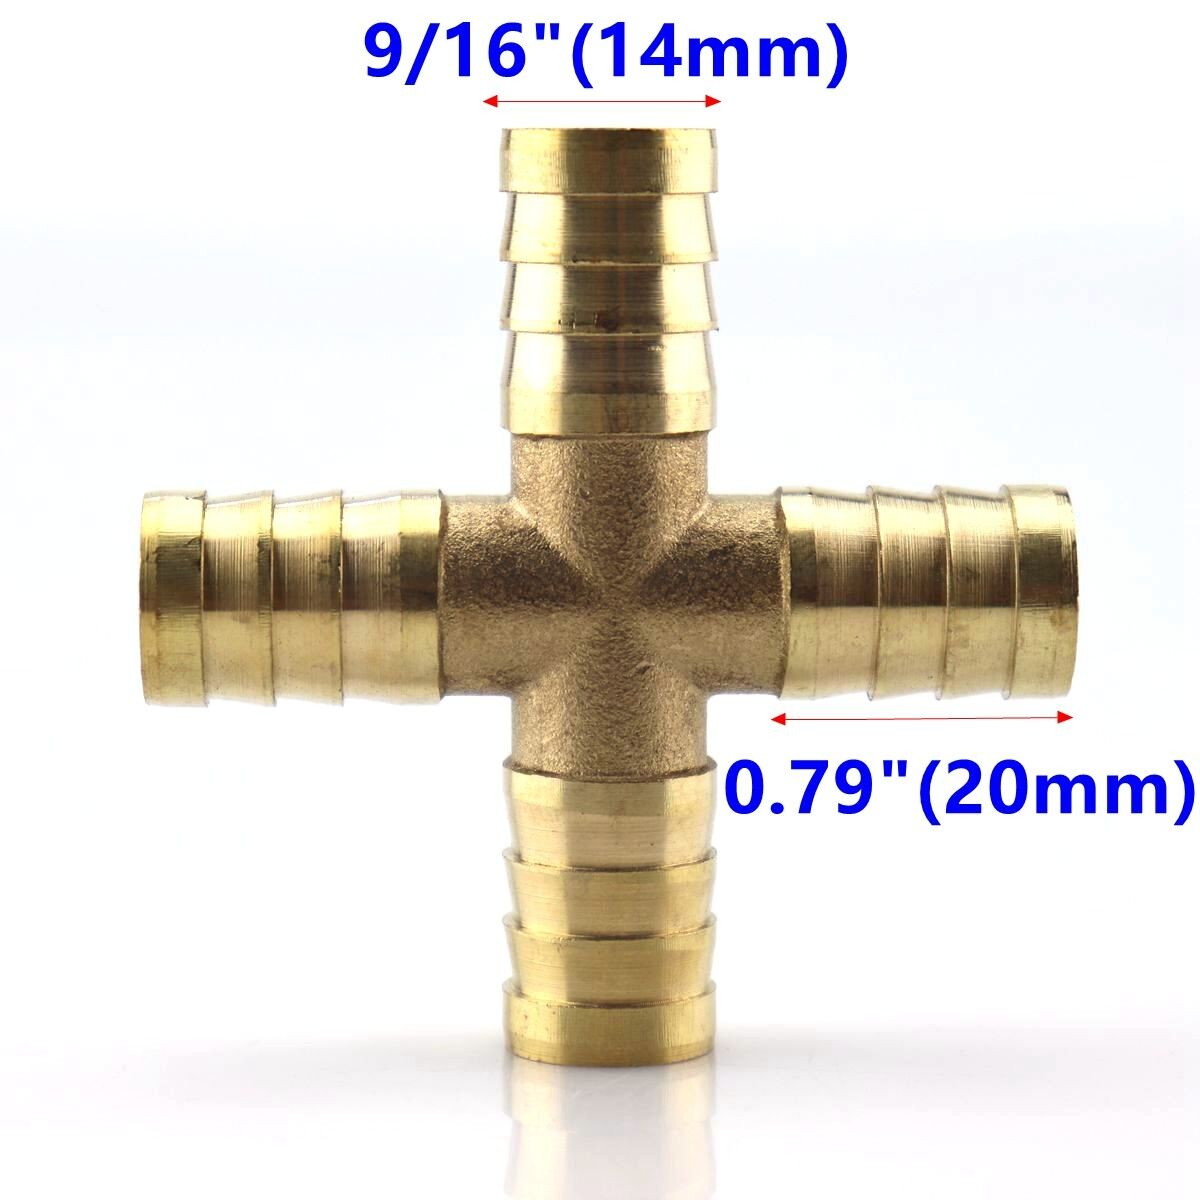 "1X HOSE BARB 4 WAY Cross Brass Pipe Fitting Thread Gas Fuel Water Air 9/16"" 14mm"